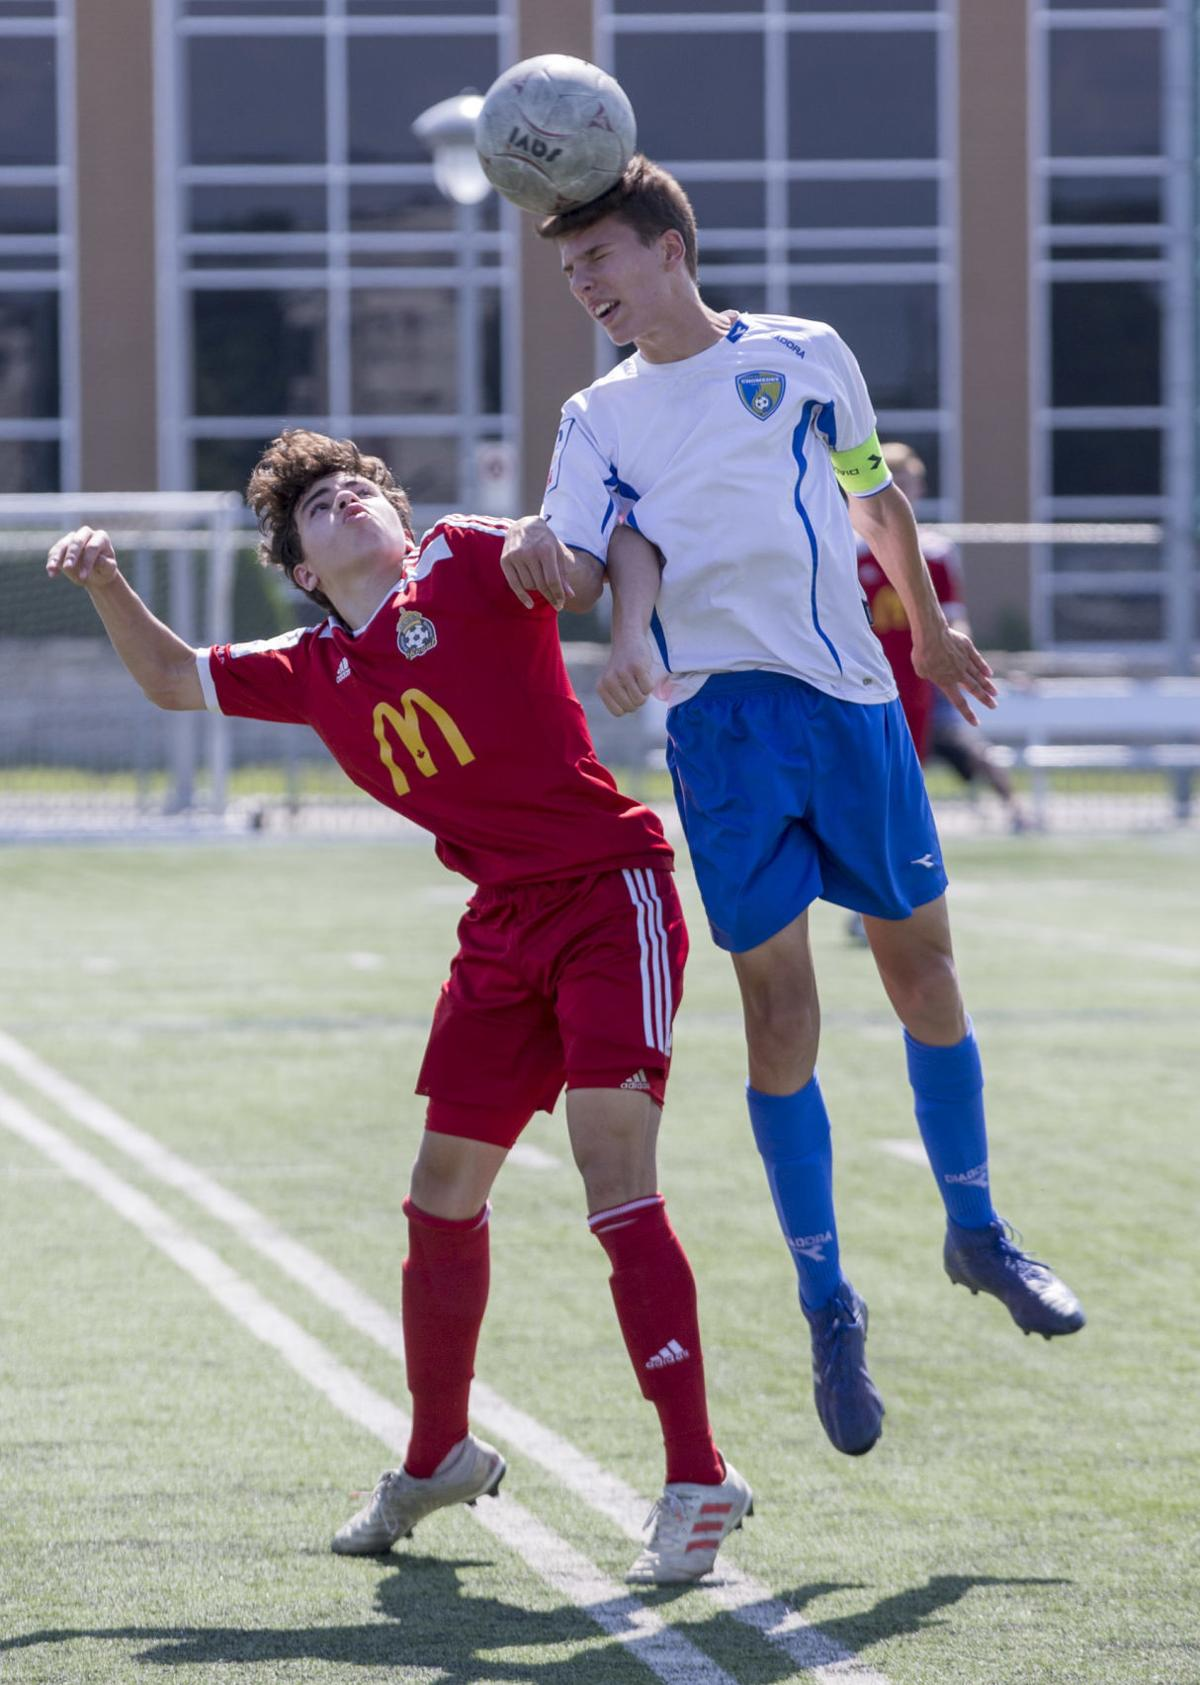 Chomedey cools down Beauport 3-0 in blistering heat